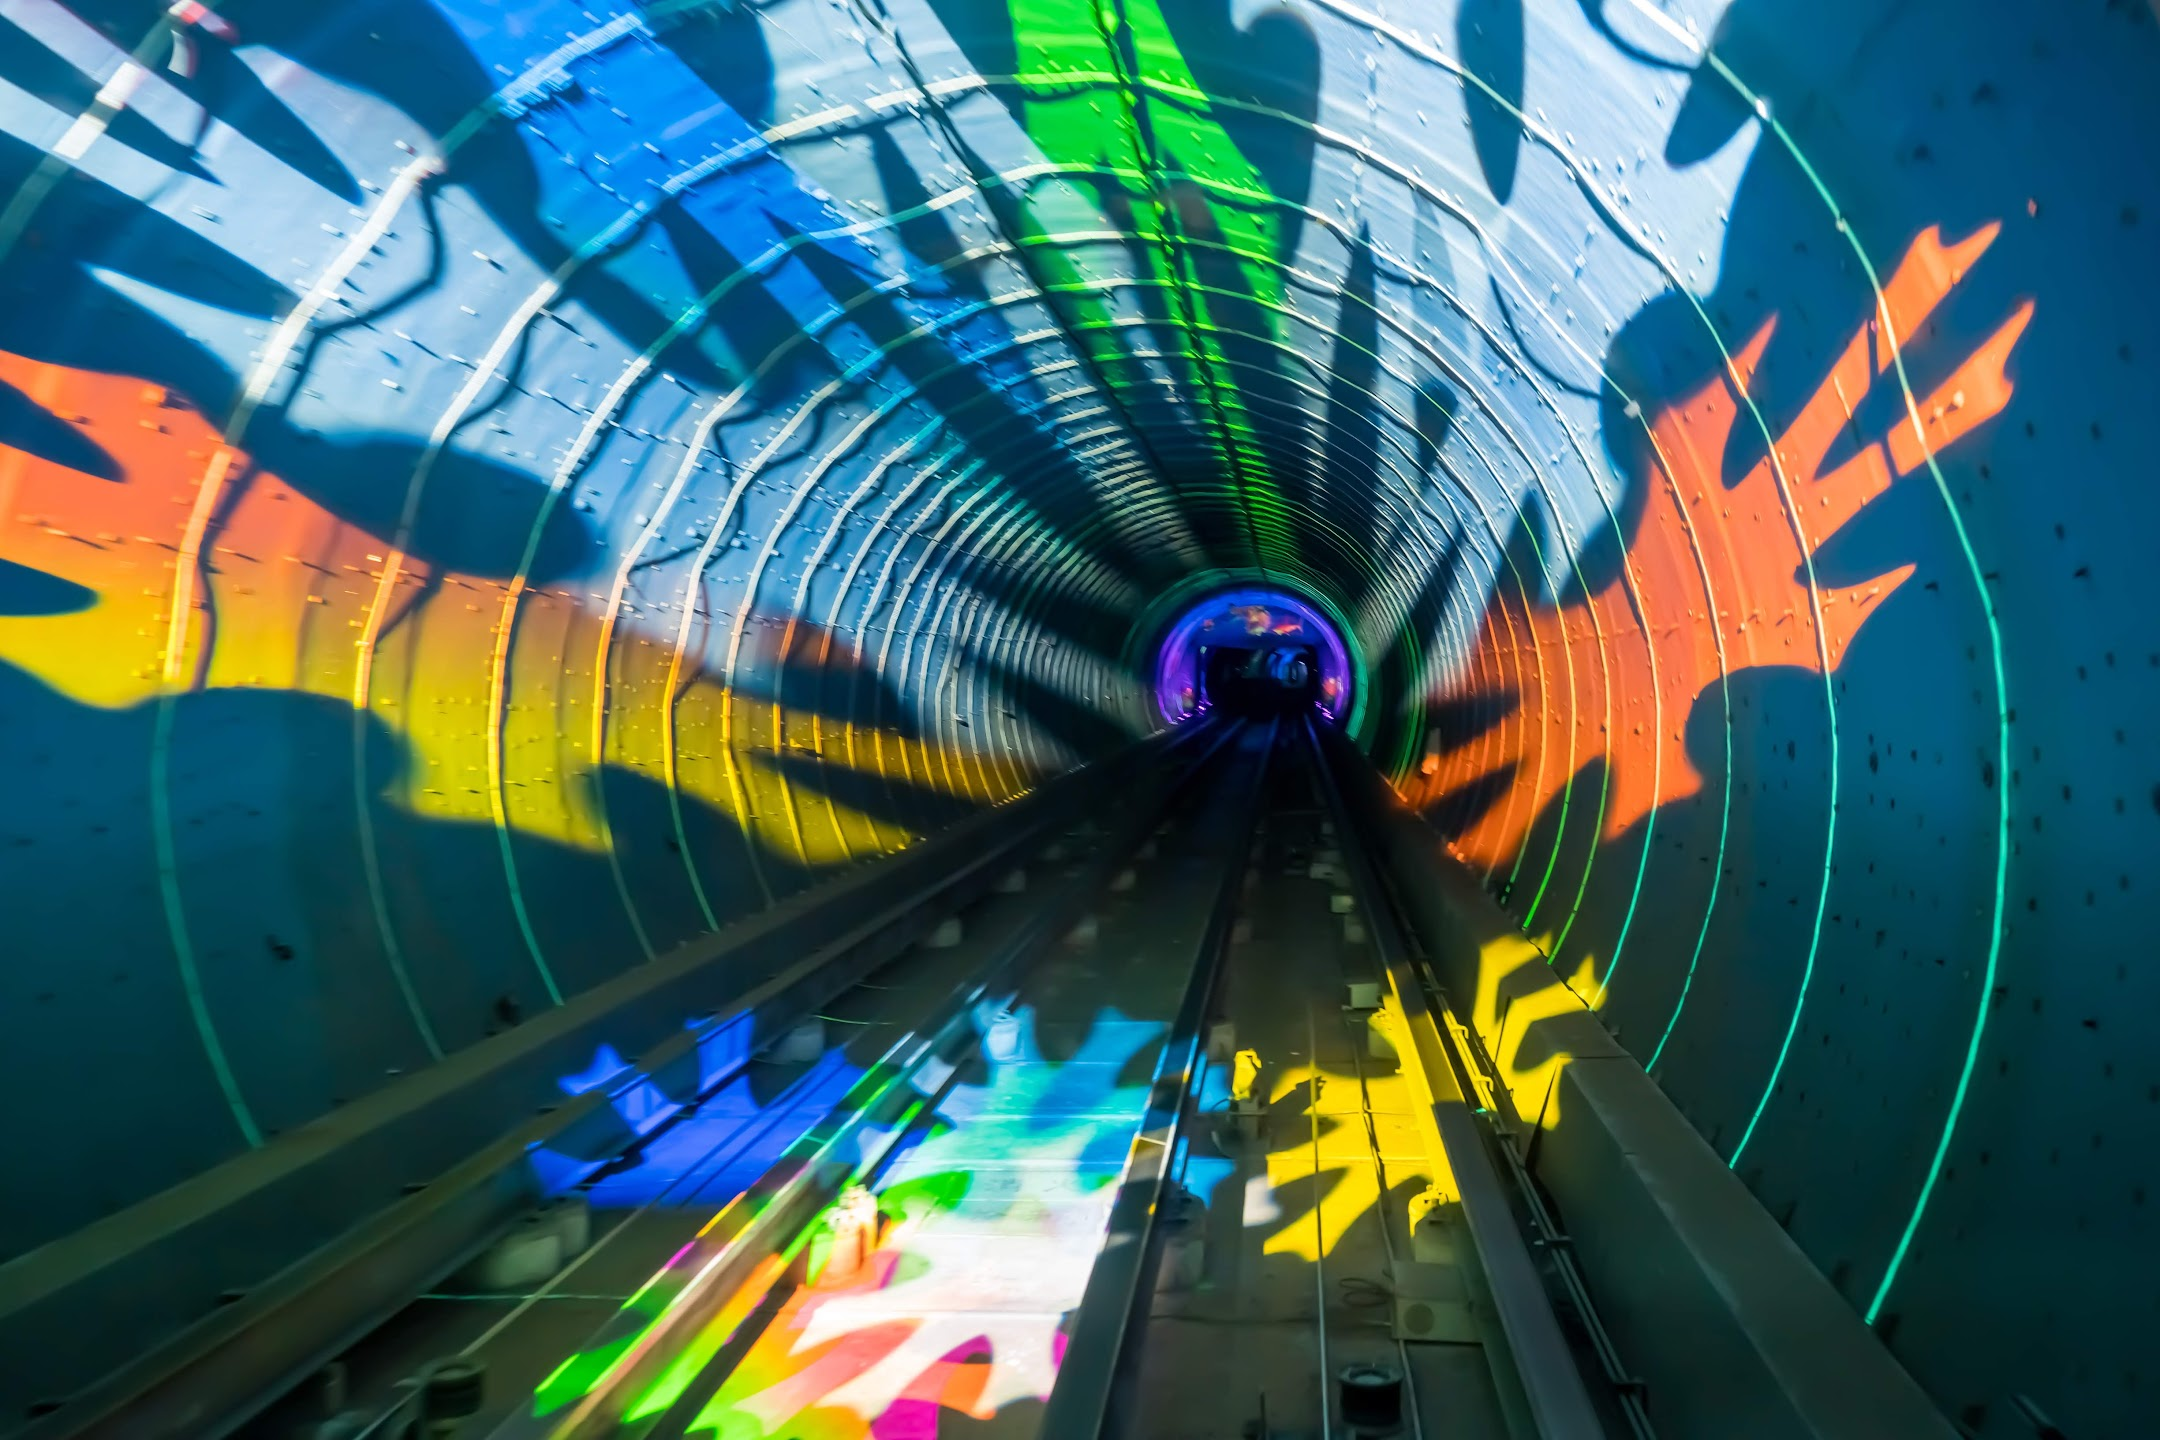 Shanghai Bund Sightseeing Tunnel2